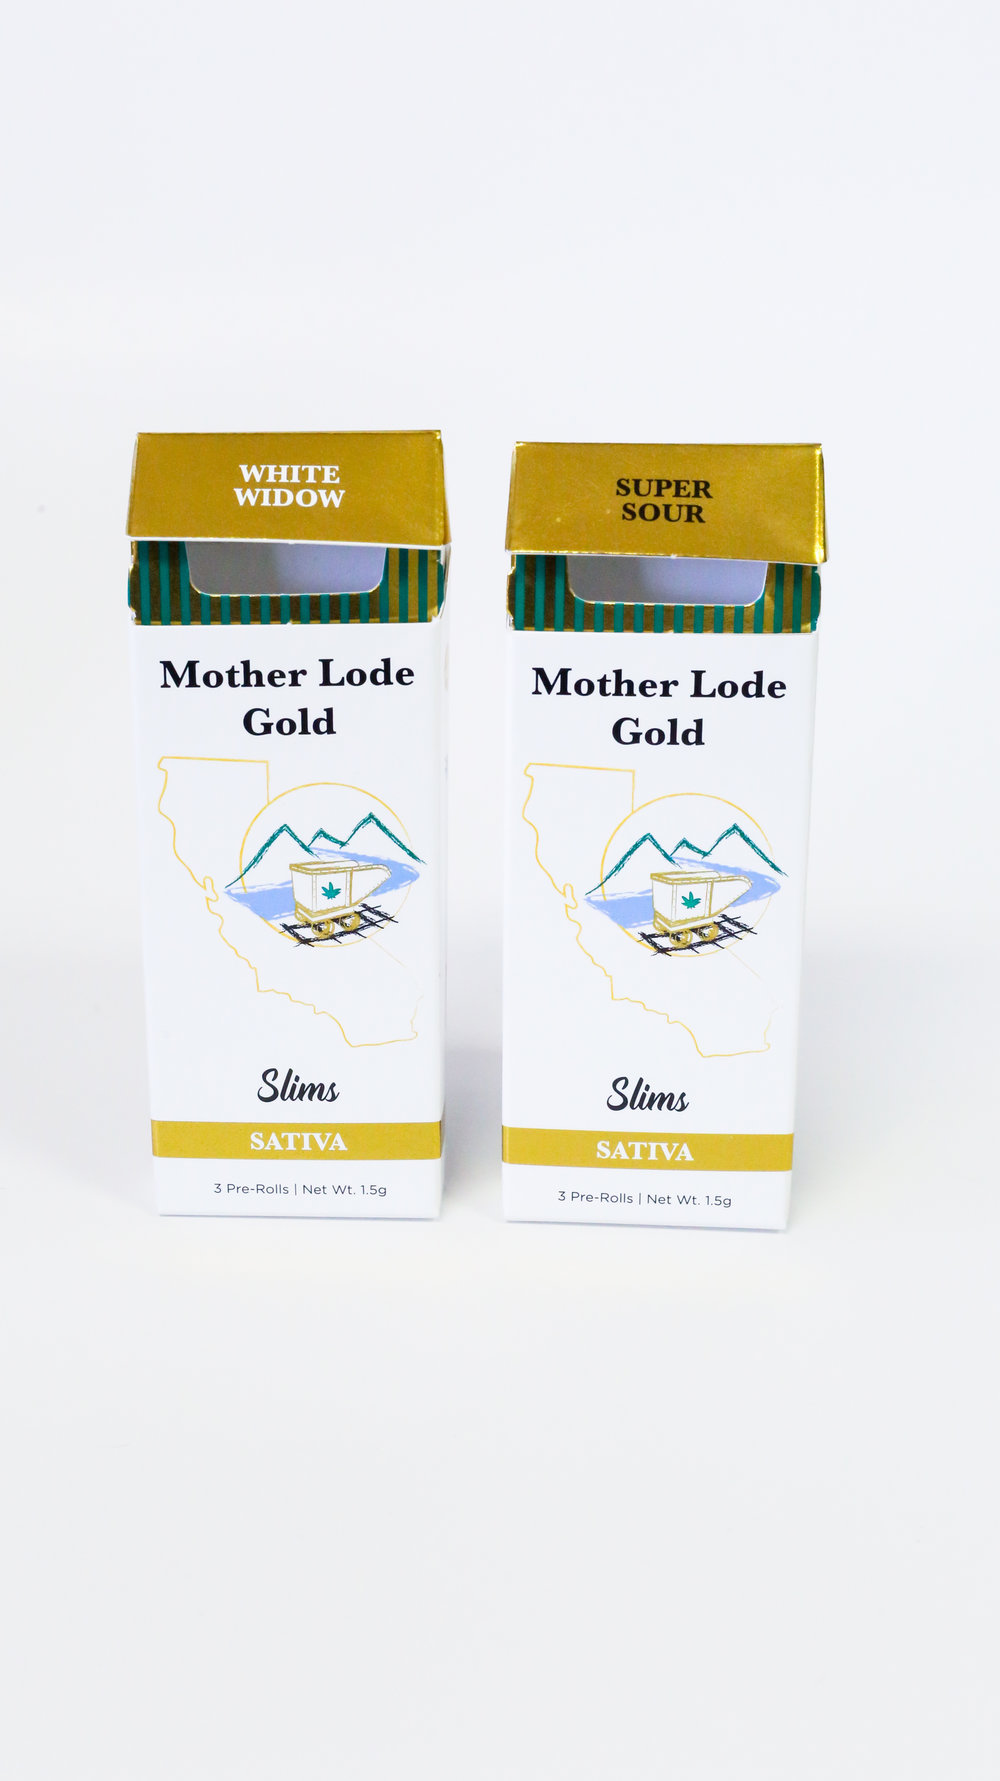 Mother Load Gold Pre-Roll Cannabis Packaging